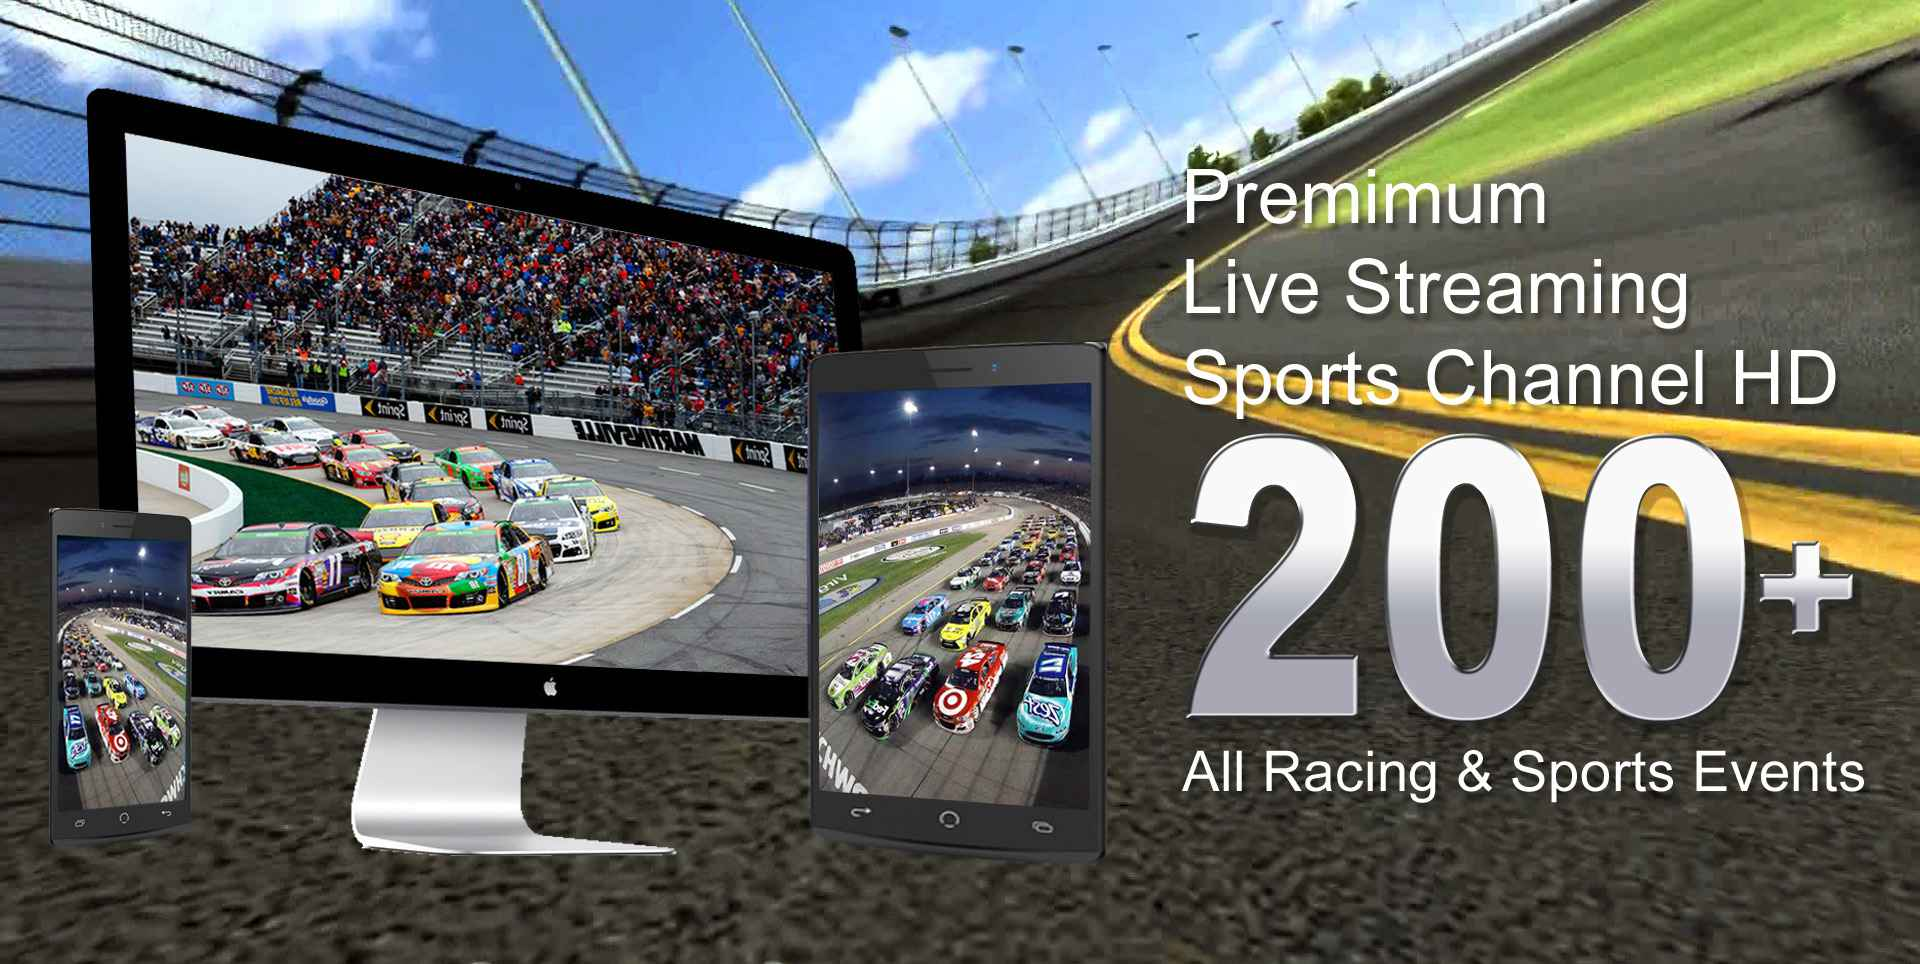 Watch 2014 NASCAR Nationwide Series 300 Streaming